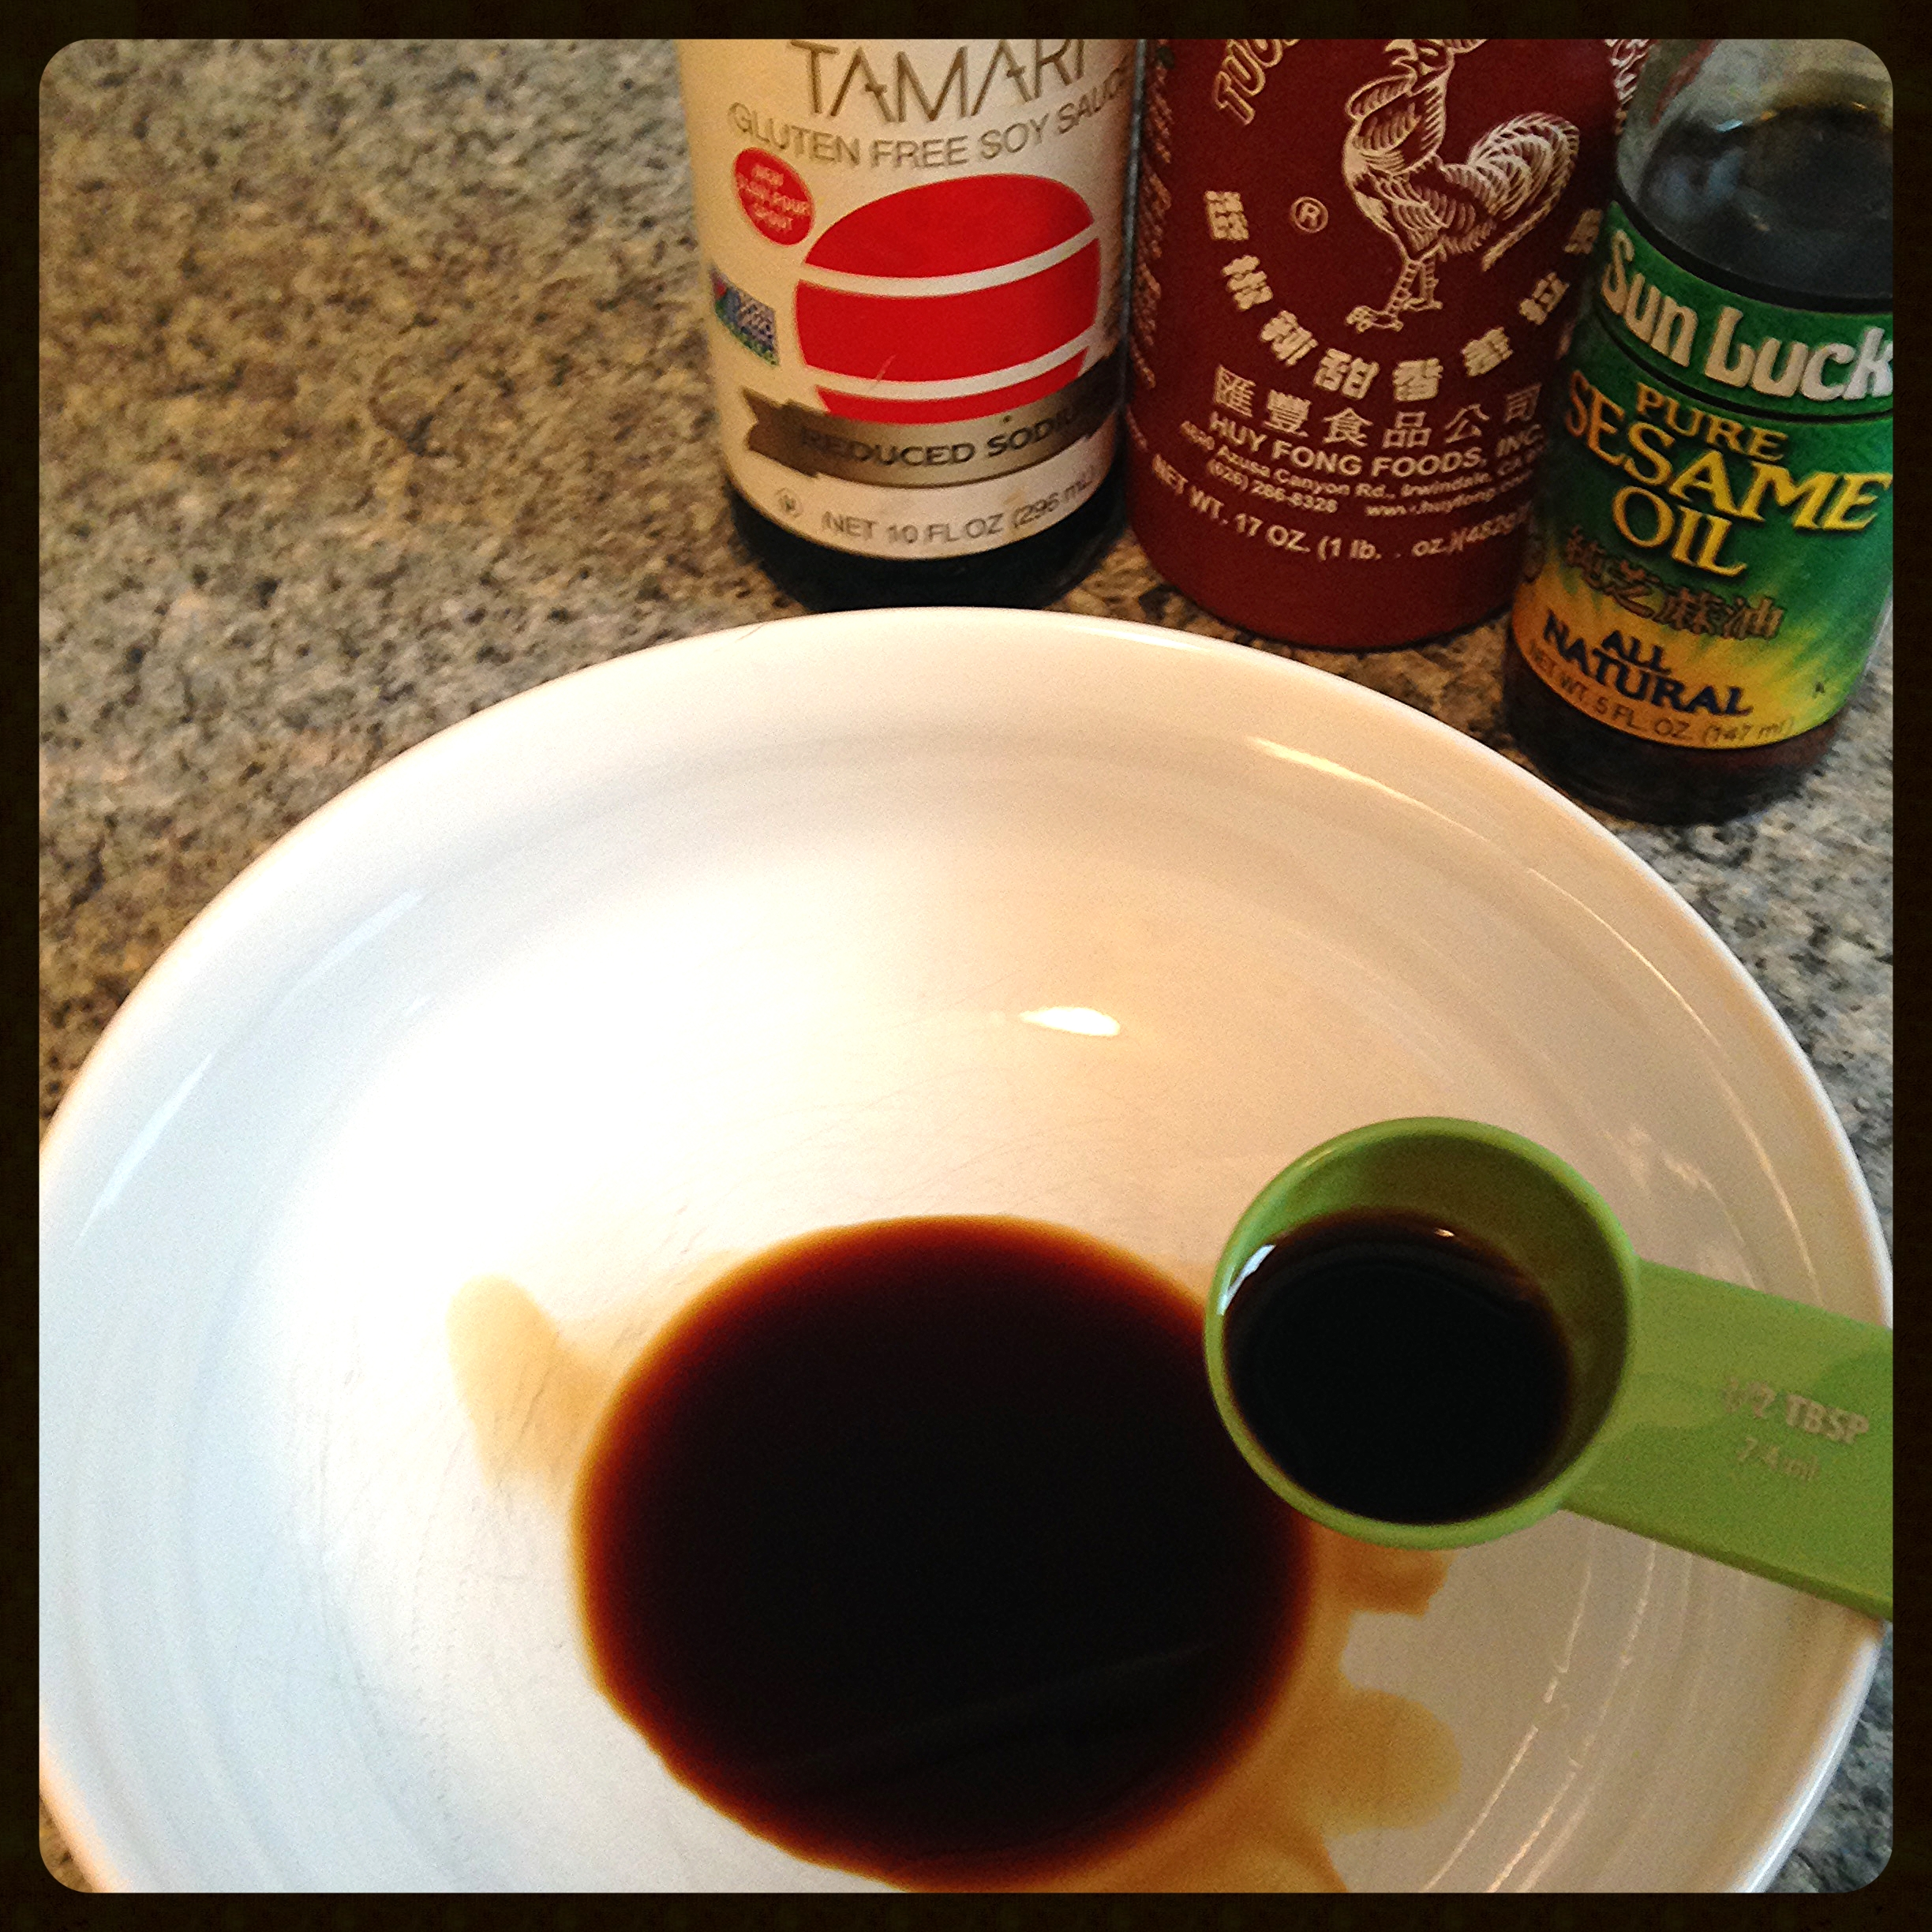 Spicy Asian Sauce